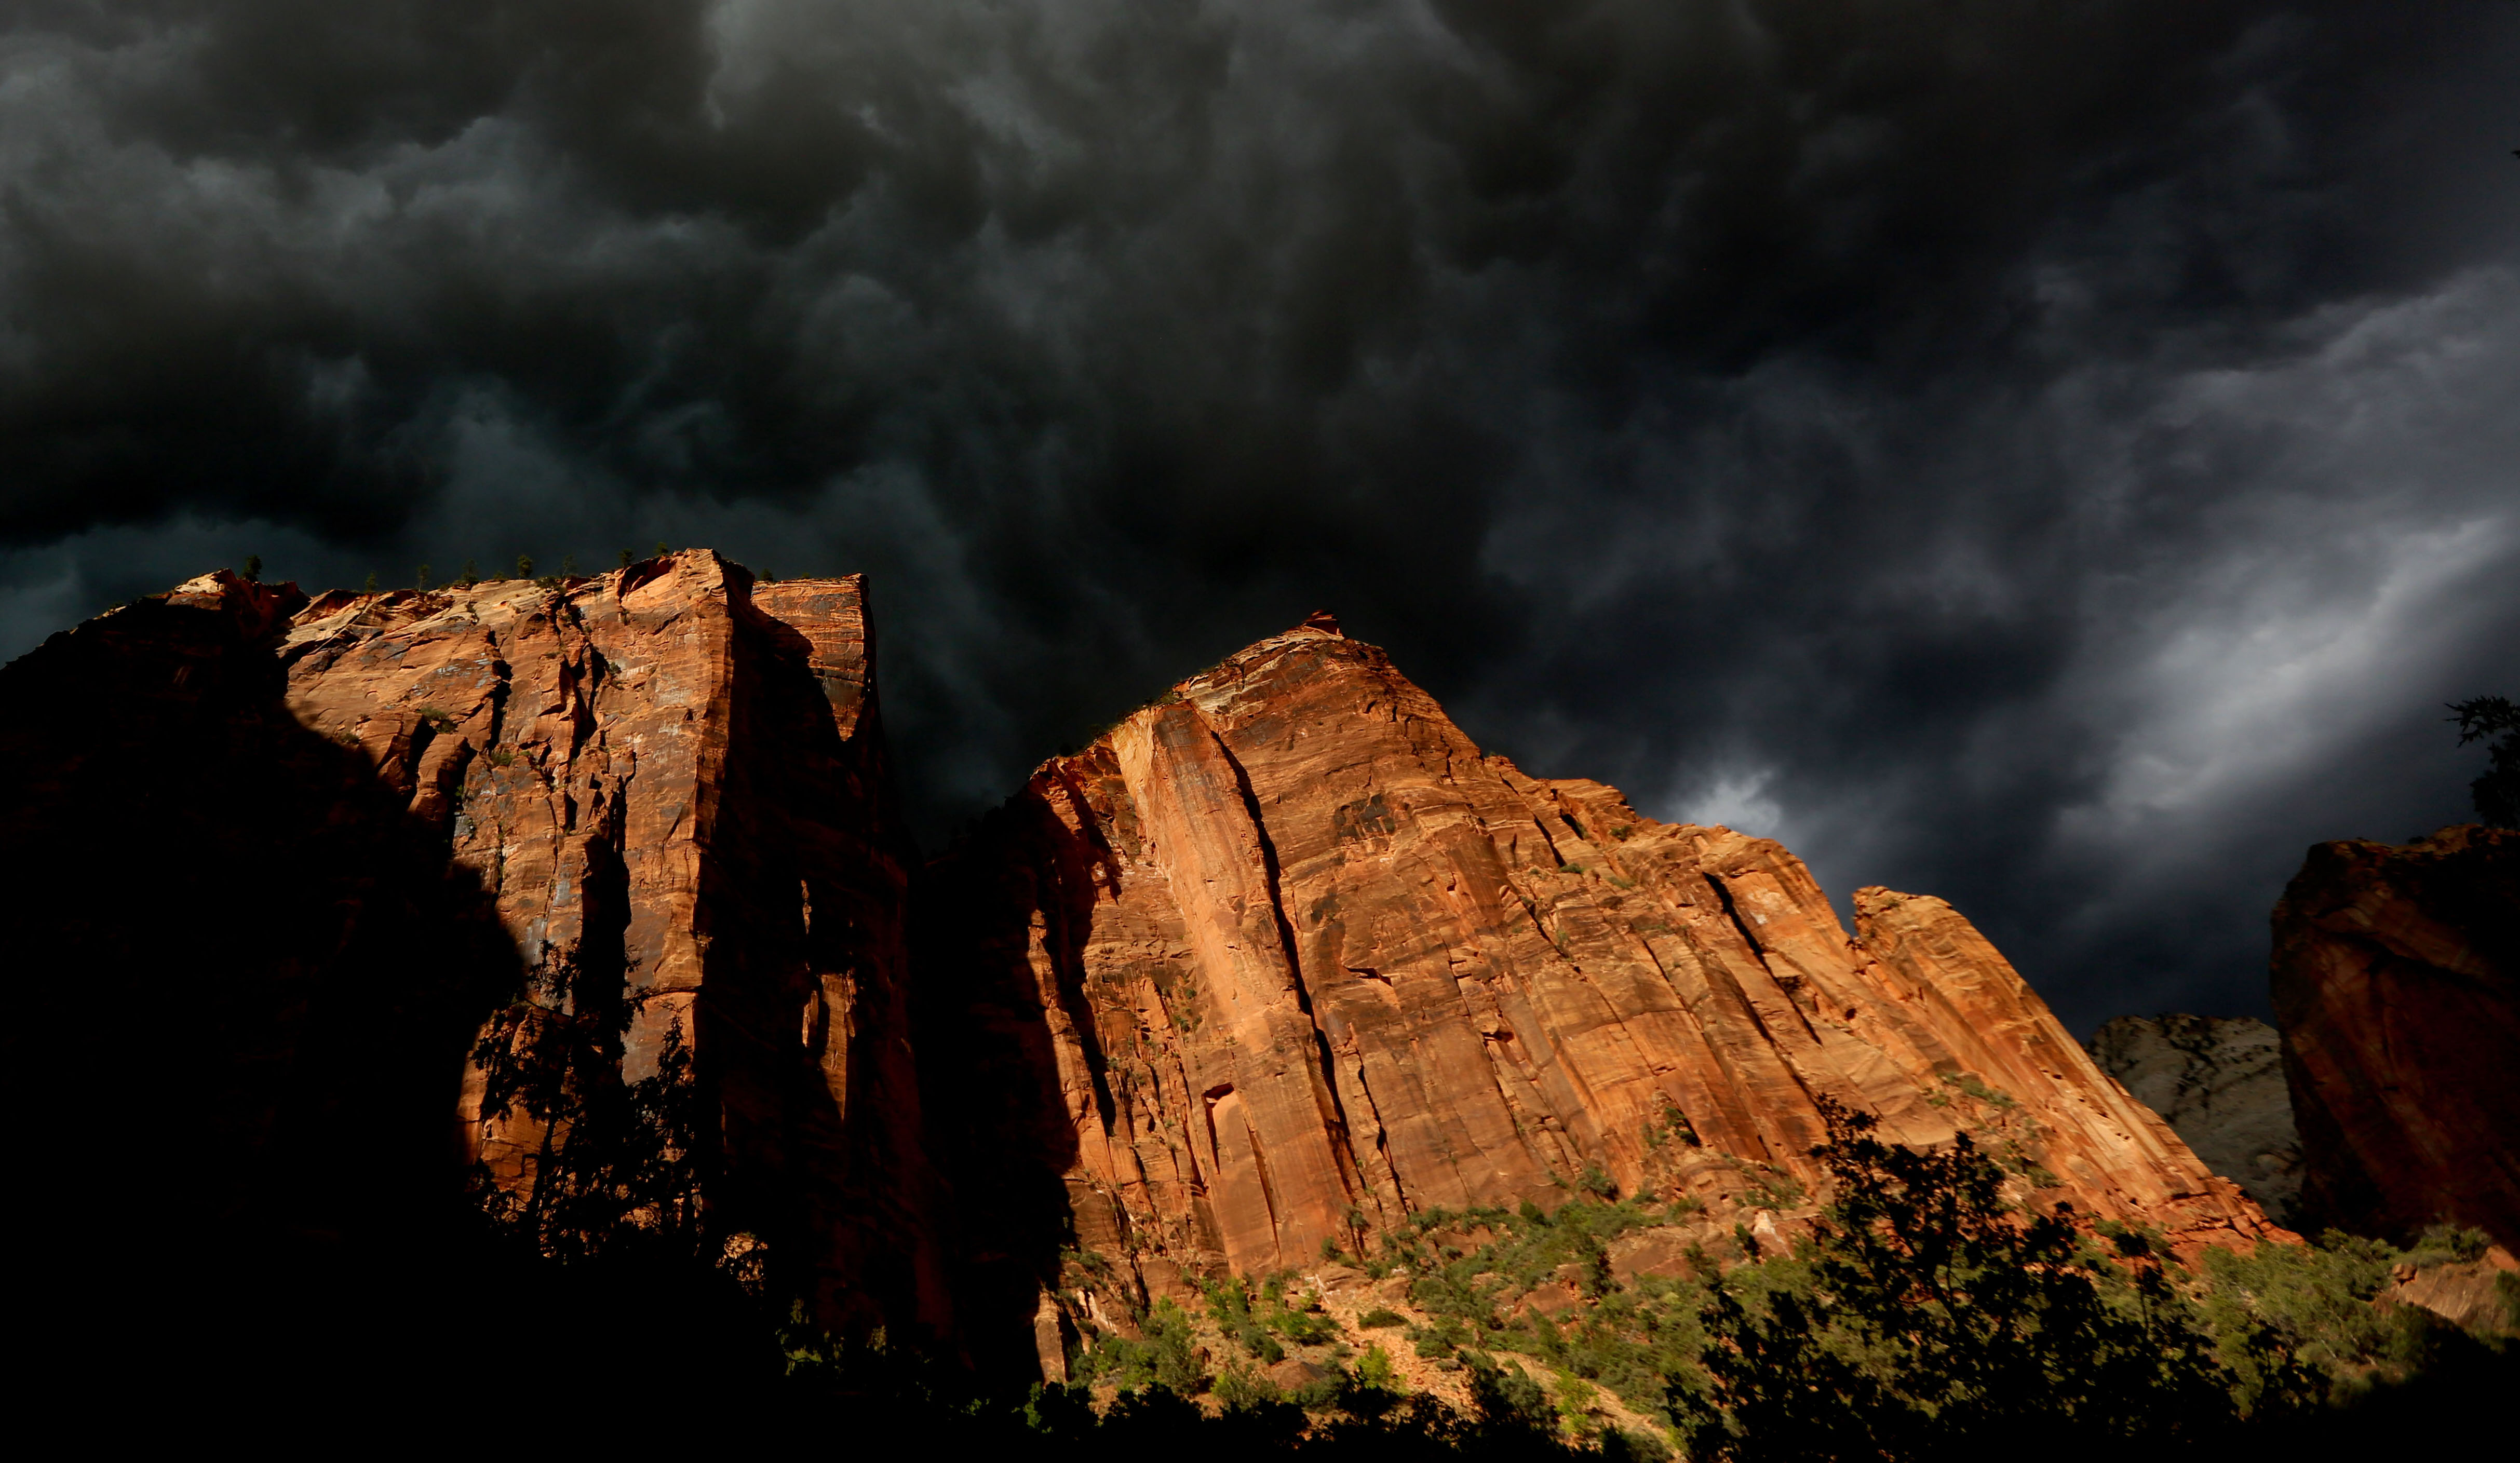 A storm makes its way through Zion National Park outside of Springdale, Utah.